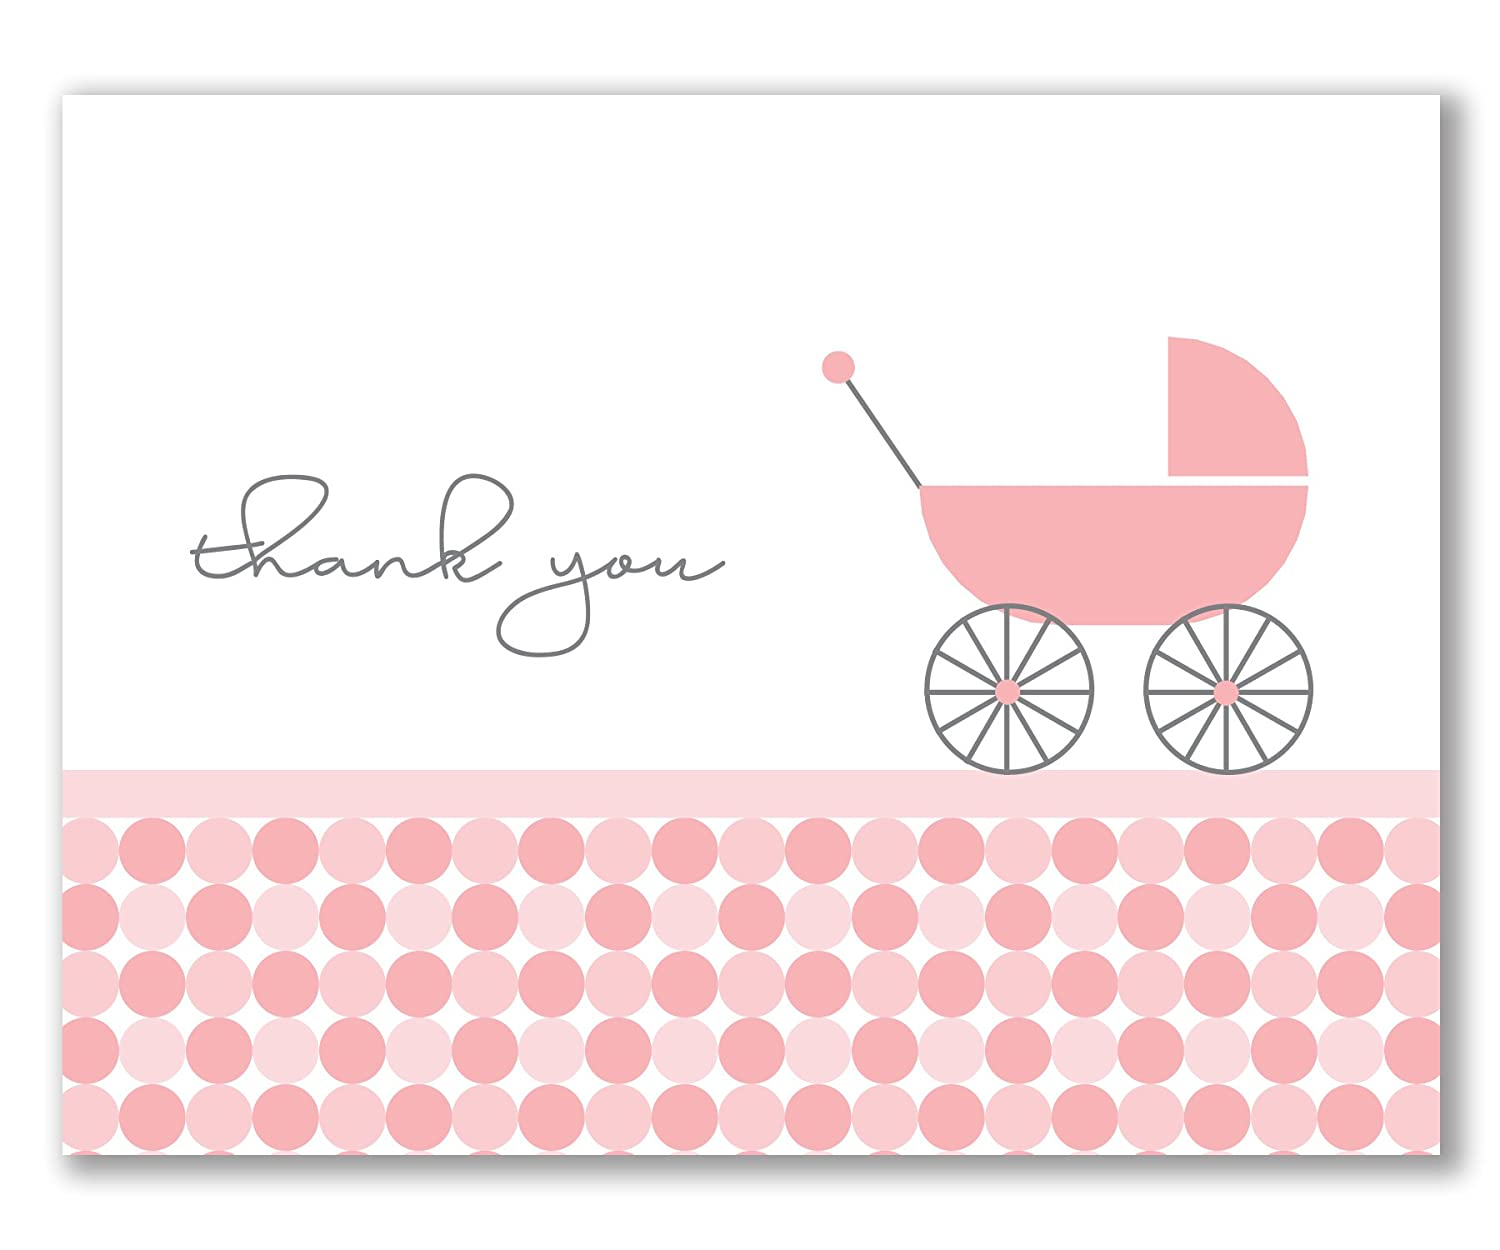 10 Baby Shower Thank You Cards, Recycled, Modern Pink Circles for Baby Girl, with Coordinating Pink Envelopes – Charley by Two Poodle Press